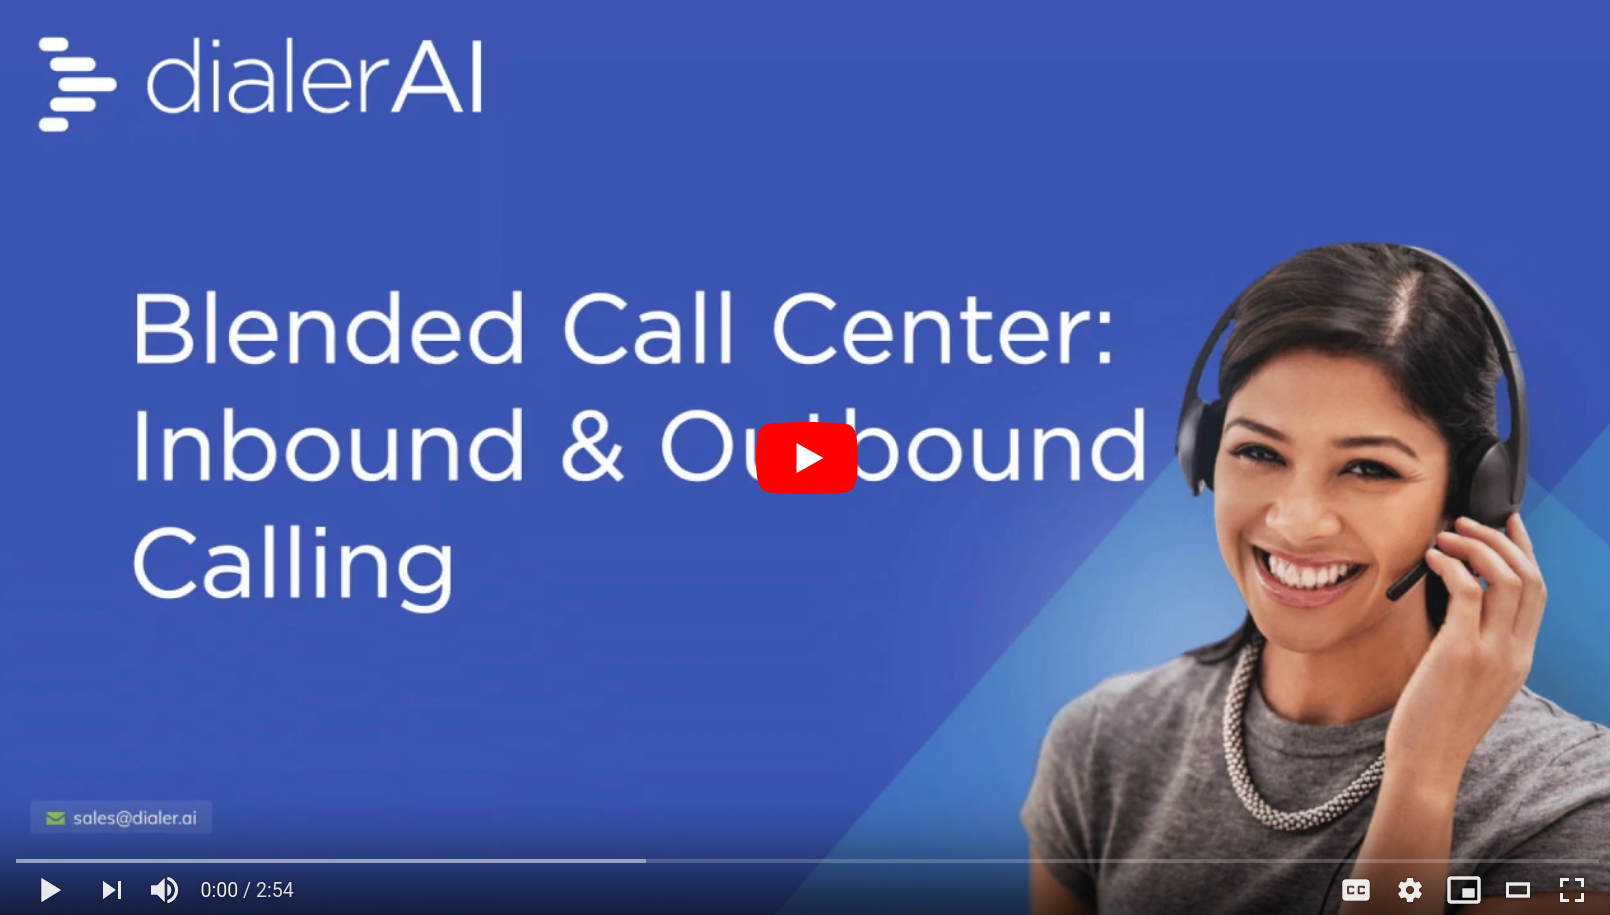 blended call-center campaign